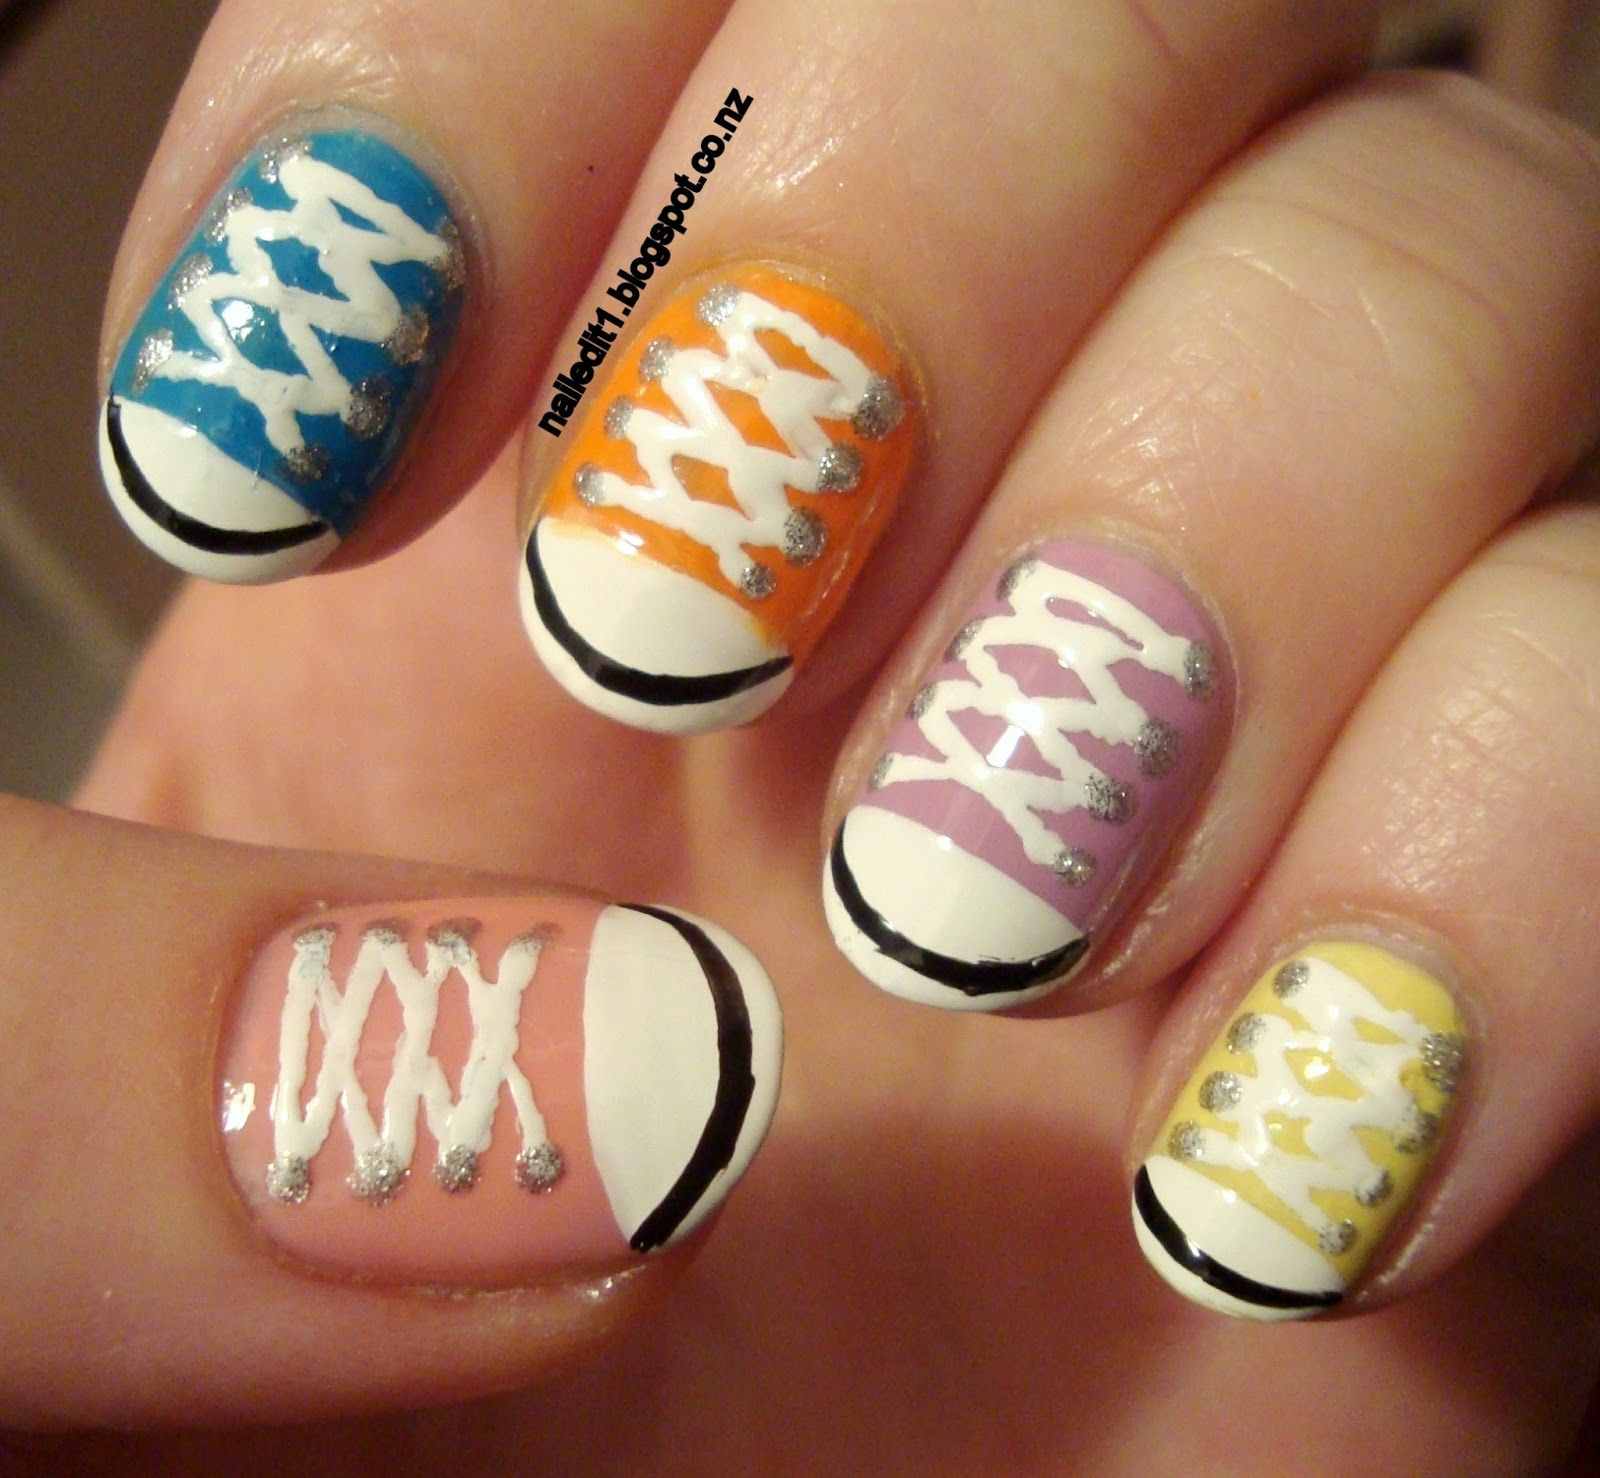 Nailed It NZ: Nail art for short nails #9 - Chuck Taylors/shoe nails ...